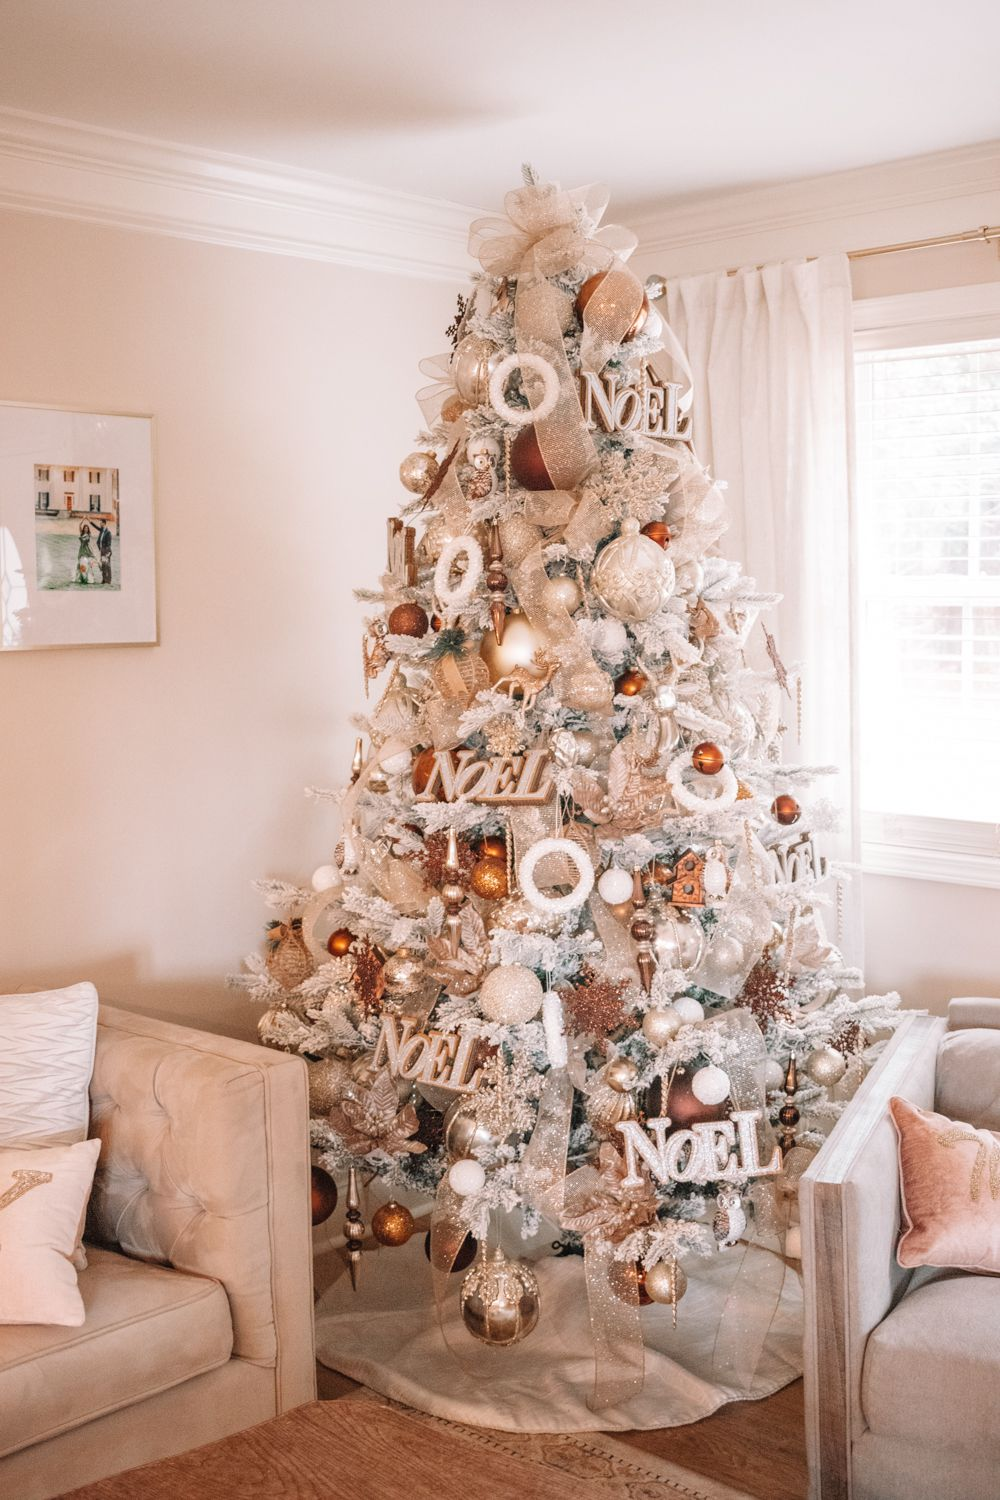 Home Bargains Christmas Room Decorations Christmas Decorations For Dining Room Chandelier Christmas In 2020 Christmas Room Decor Cute Room Decor Dining Room Chandelier